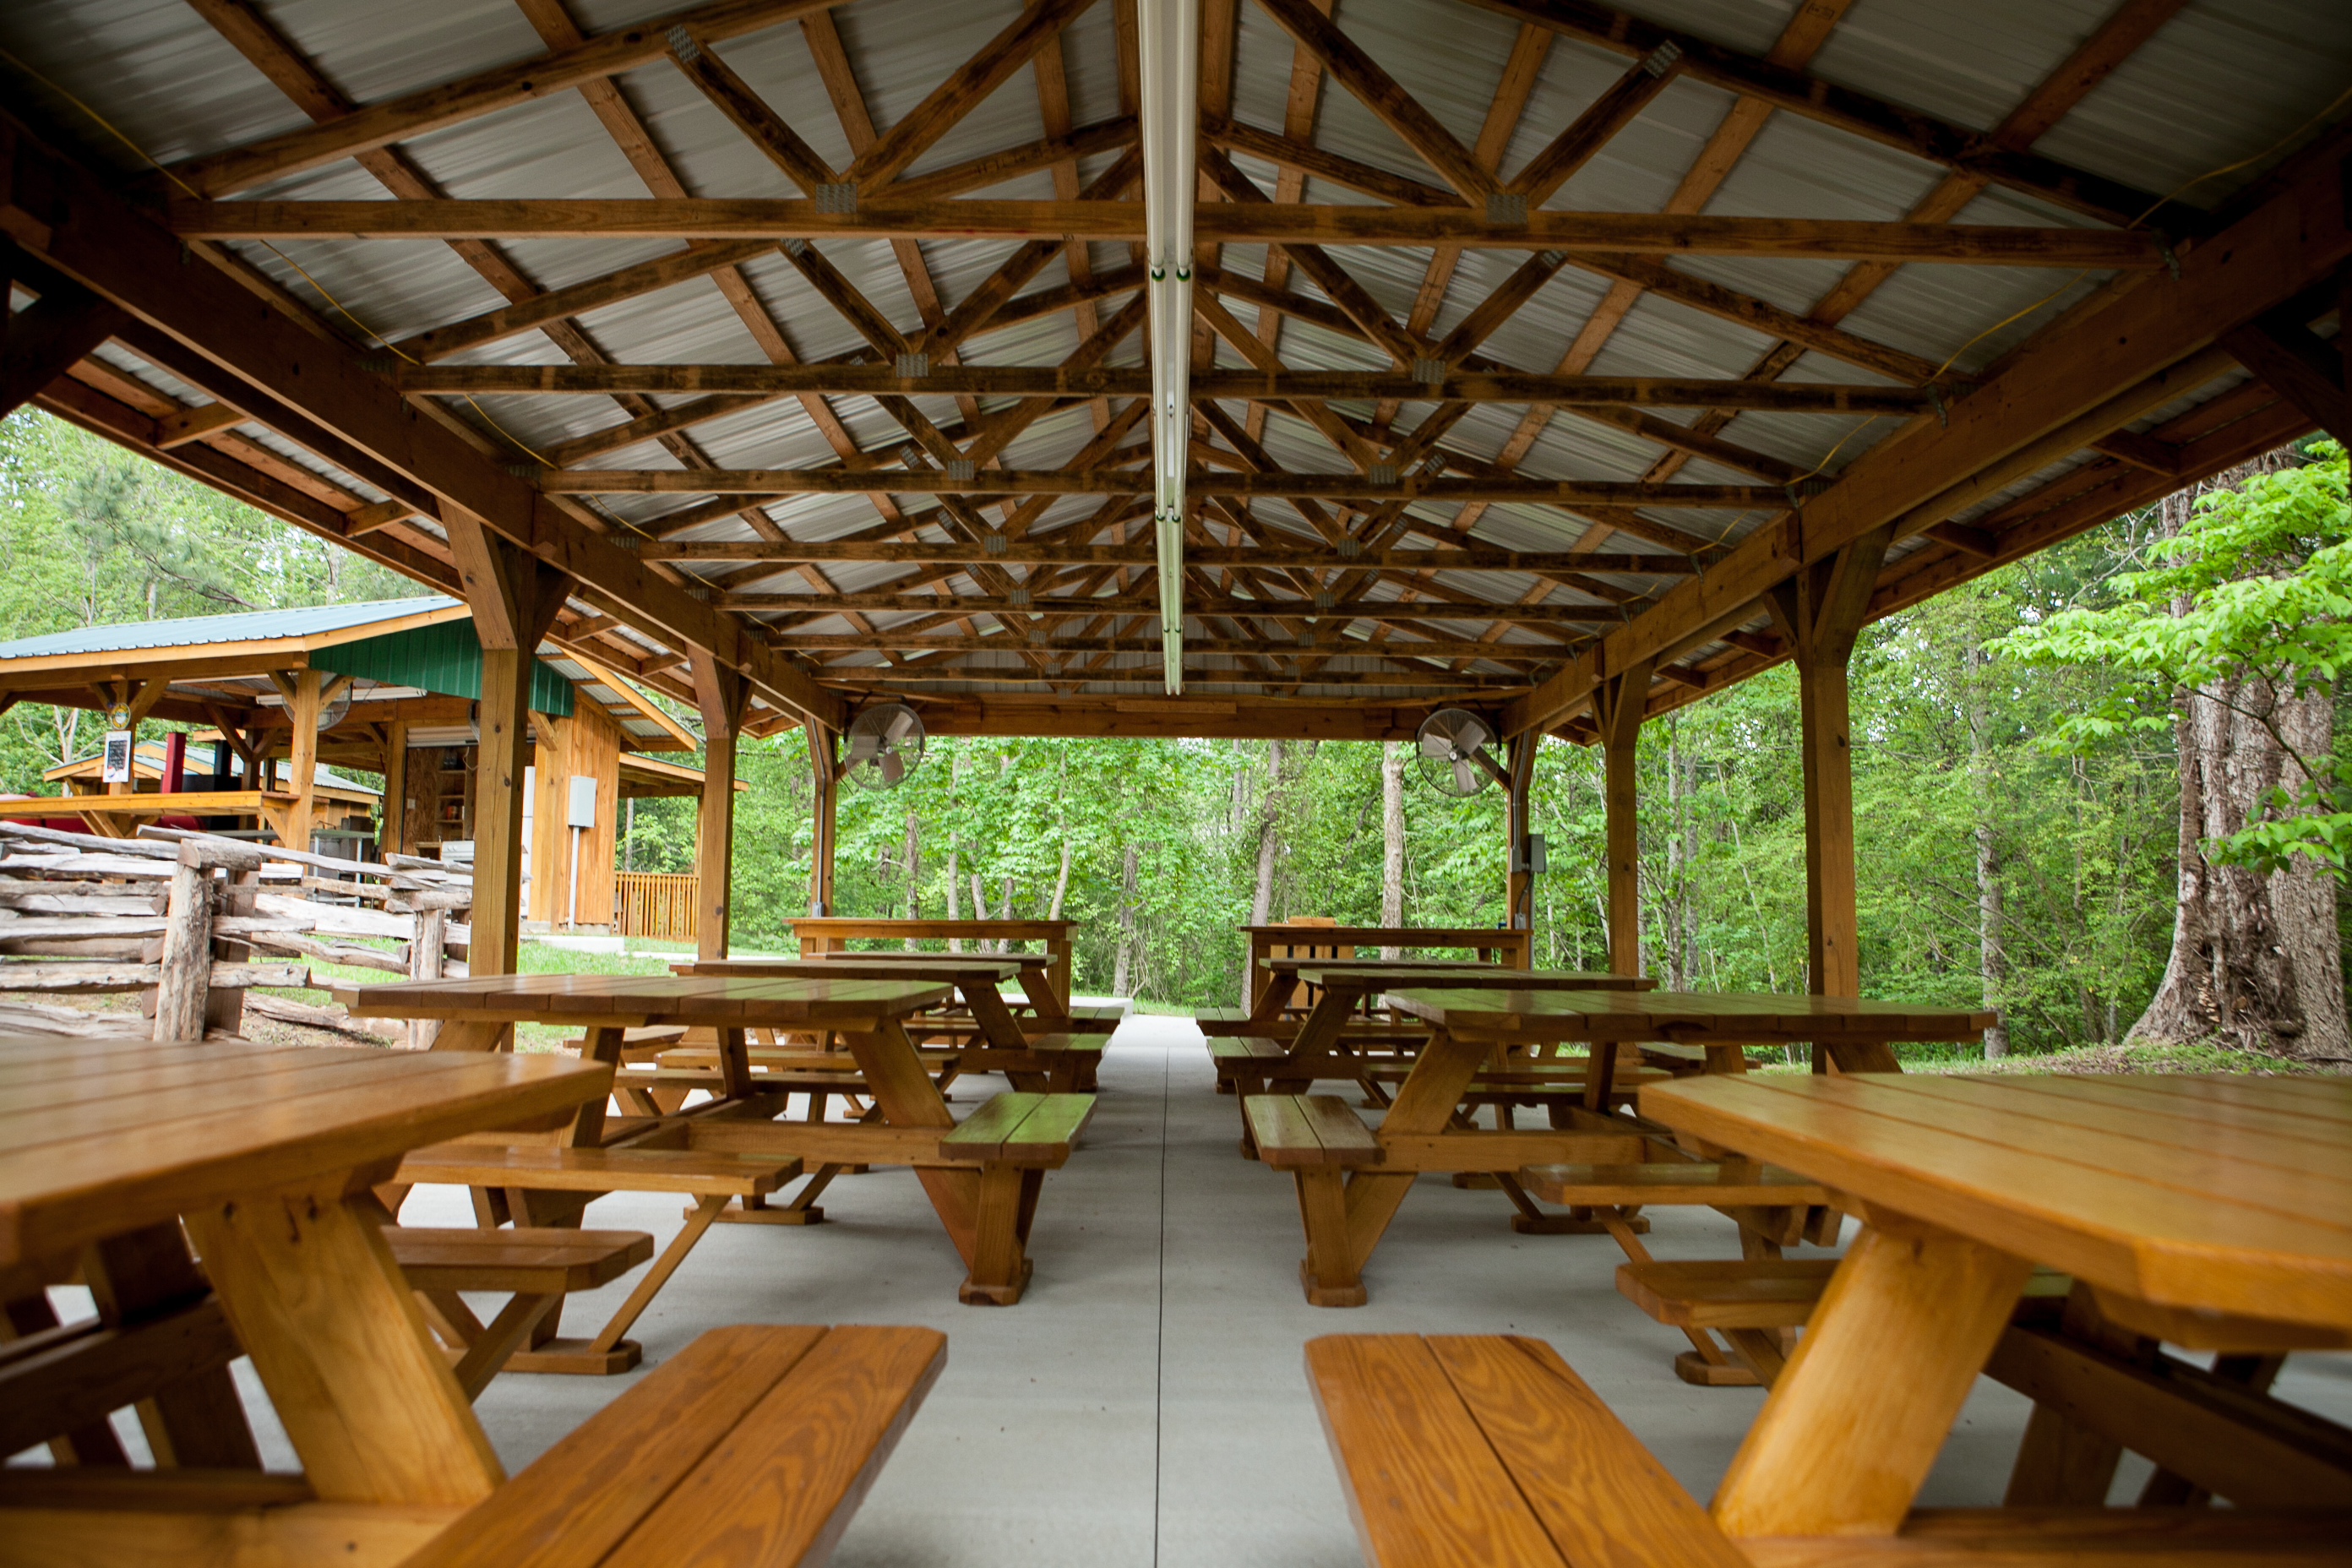 Covered Picnic Shelters : Rates camp information chattooga sounds campground